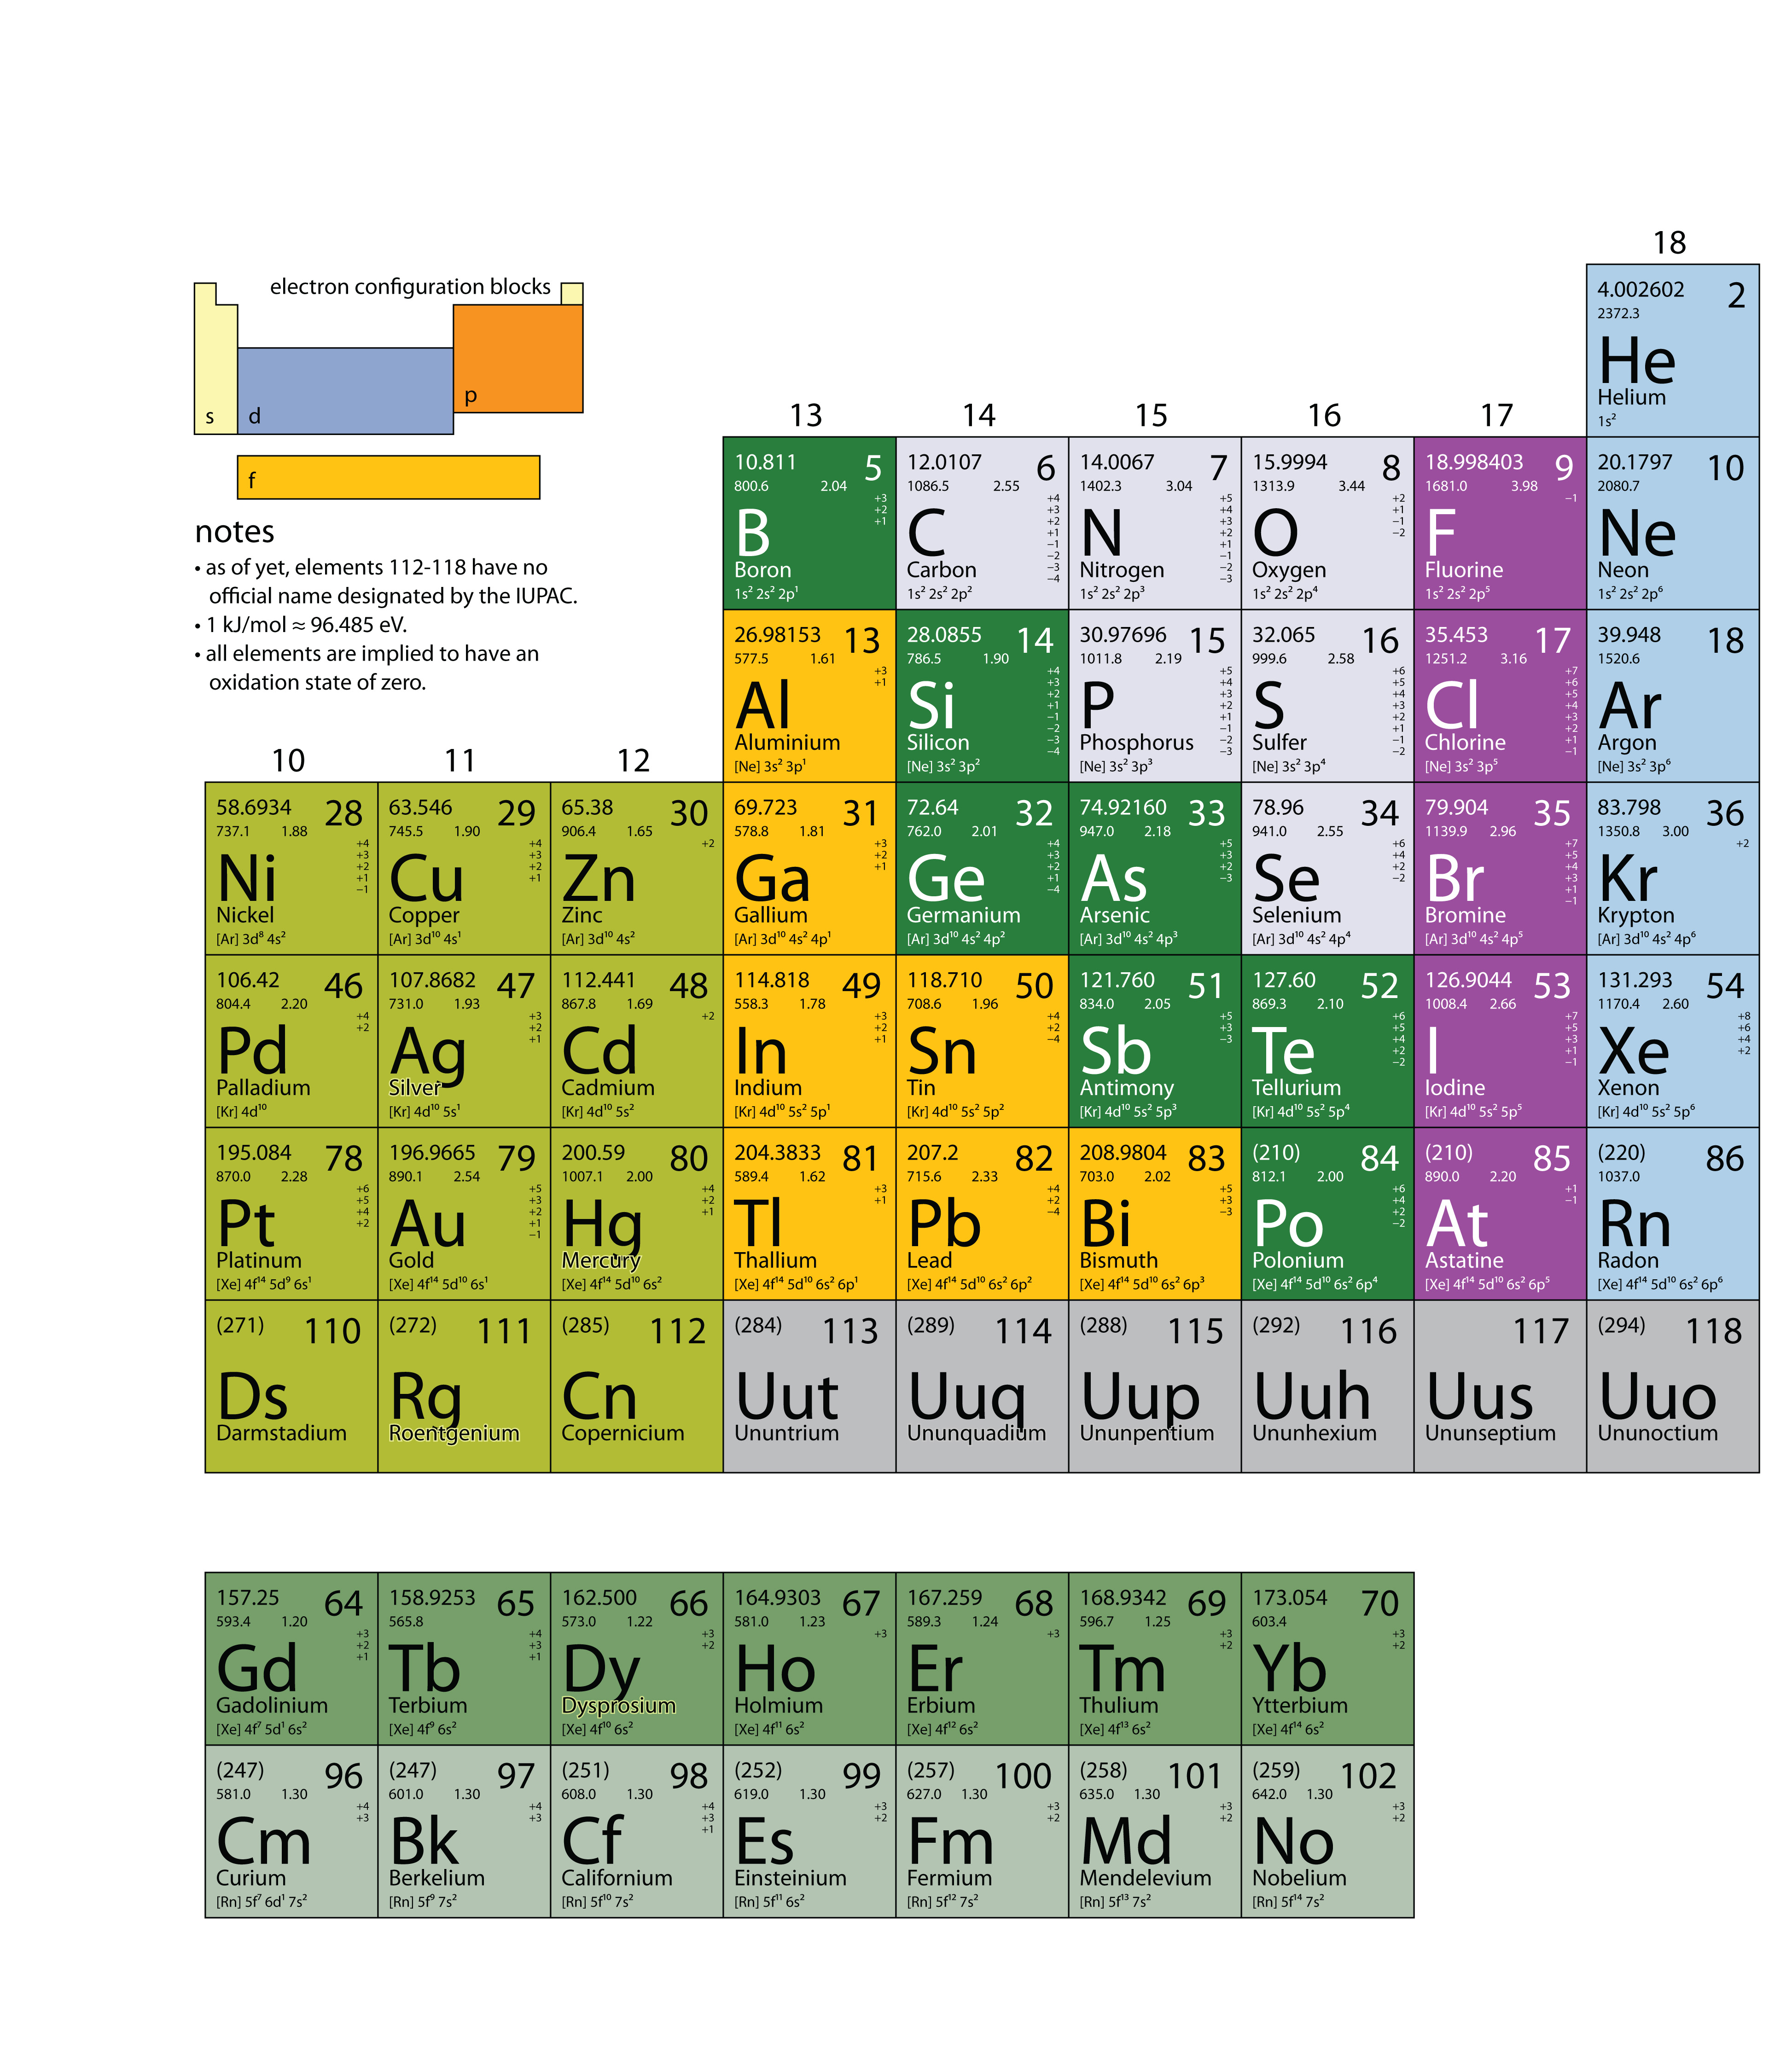 New periodic table elements br and ba periodic periodic elements ba br periodic table and table basics the of the table of elements the 171 gamestrikefo Image collections